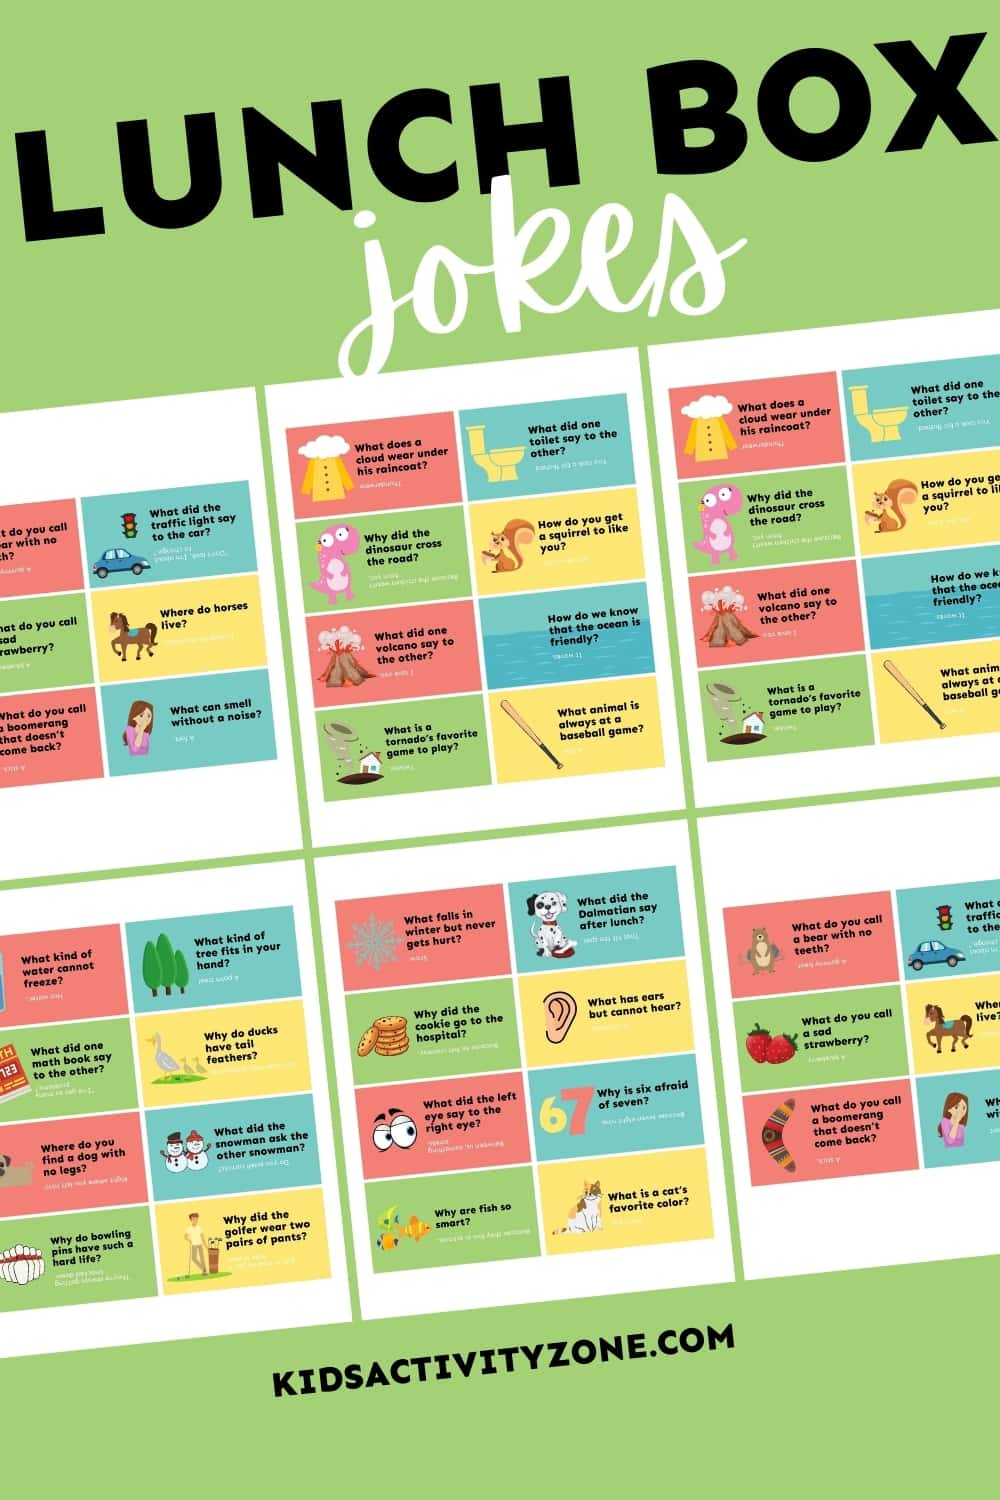 Surprise your kids with these funny Lunch Box Jokes! They will love opening up their lunch box to find one of these jokes tucked inside. Grab this free printable to put a smile on your kids face during lunchtime.